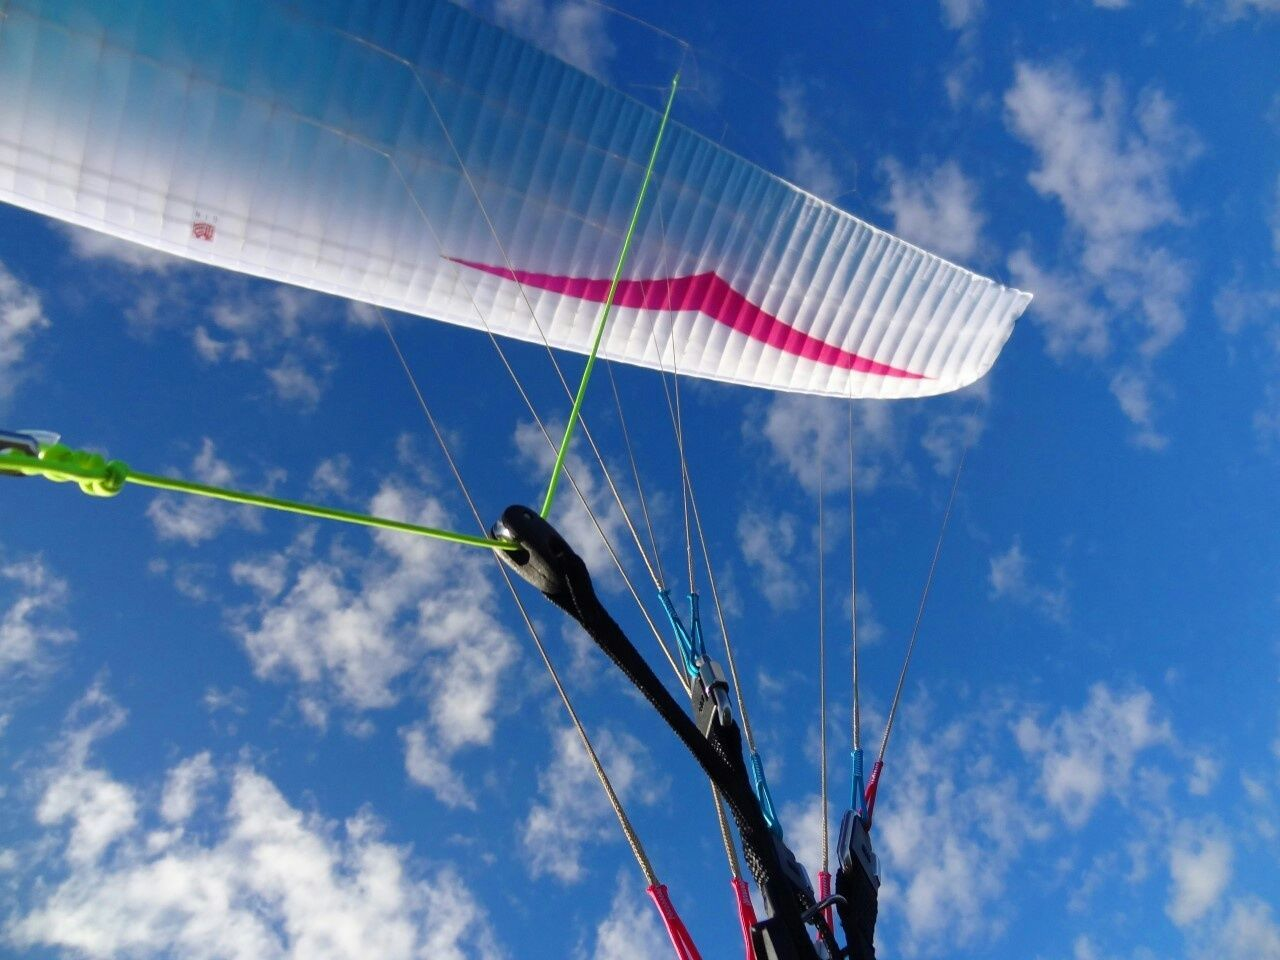 low angle view, sky, cloud - sky, day, outdoors, blue, adventure, nature, parachute, no people, extreme sports, vapor trail